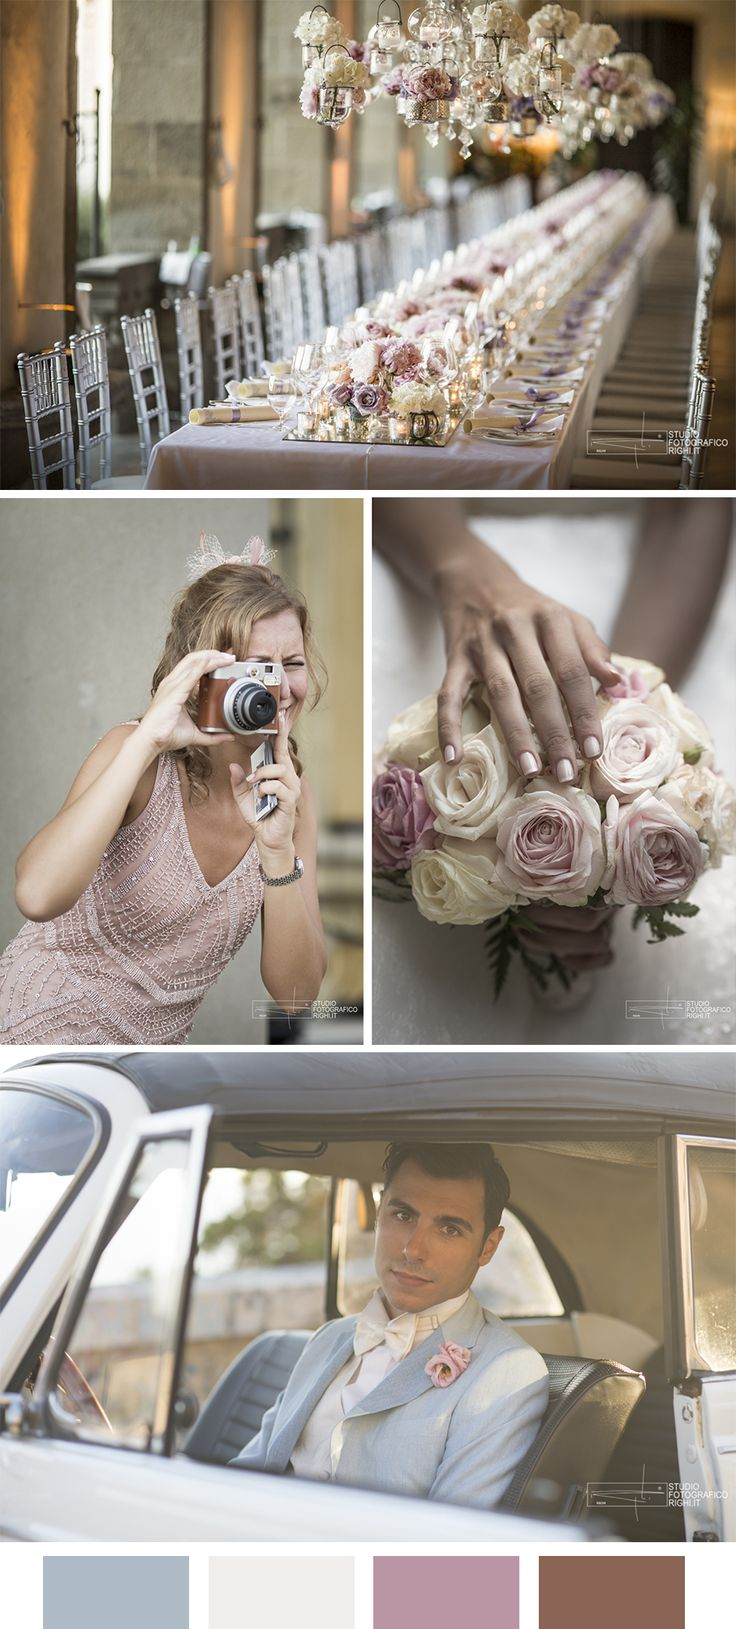 4 Pastel color combination for your wedding day! | Photos by Studio Fotografico Righi | http://www.studiofotograficorighi.it/